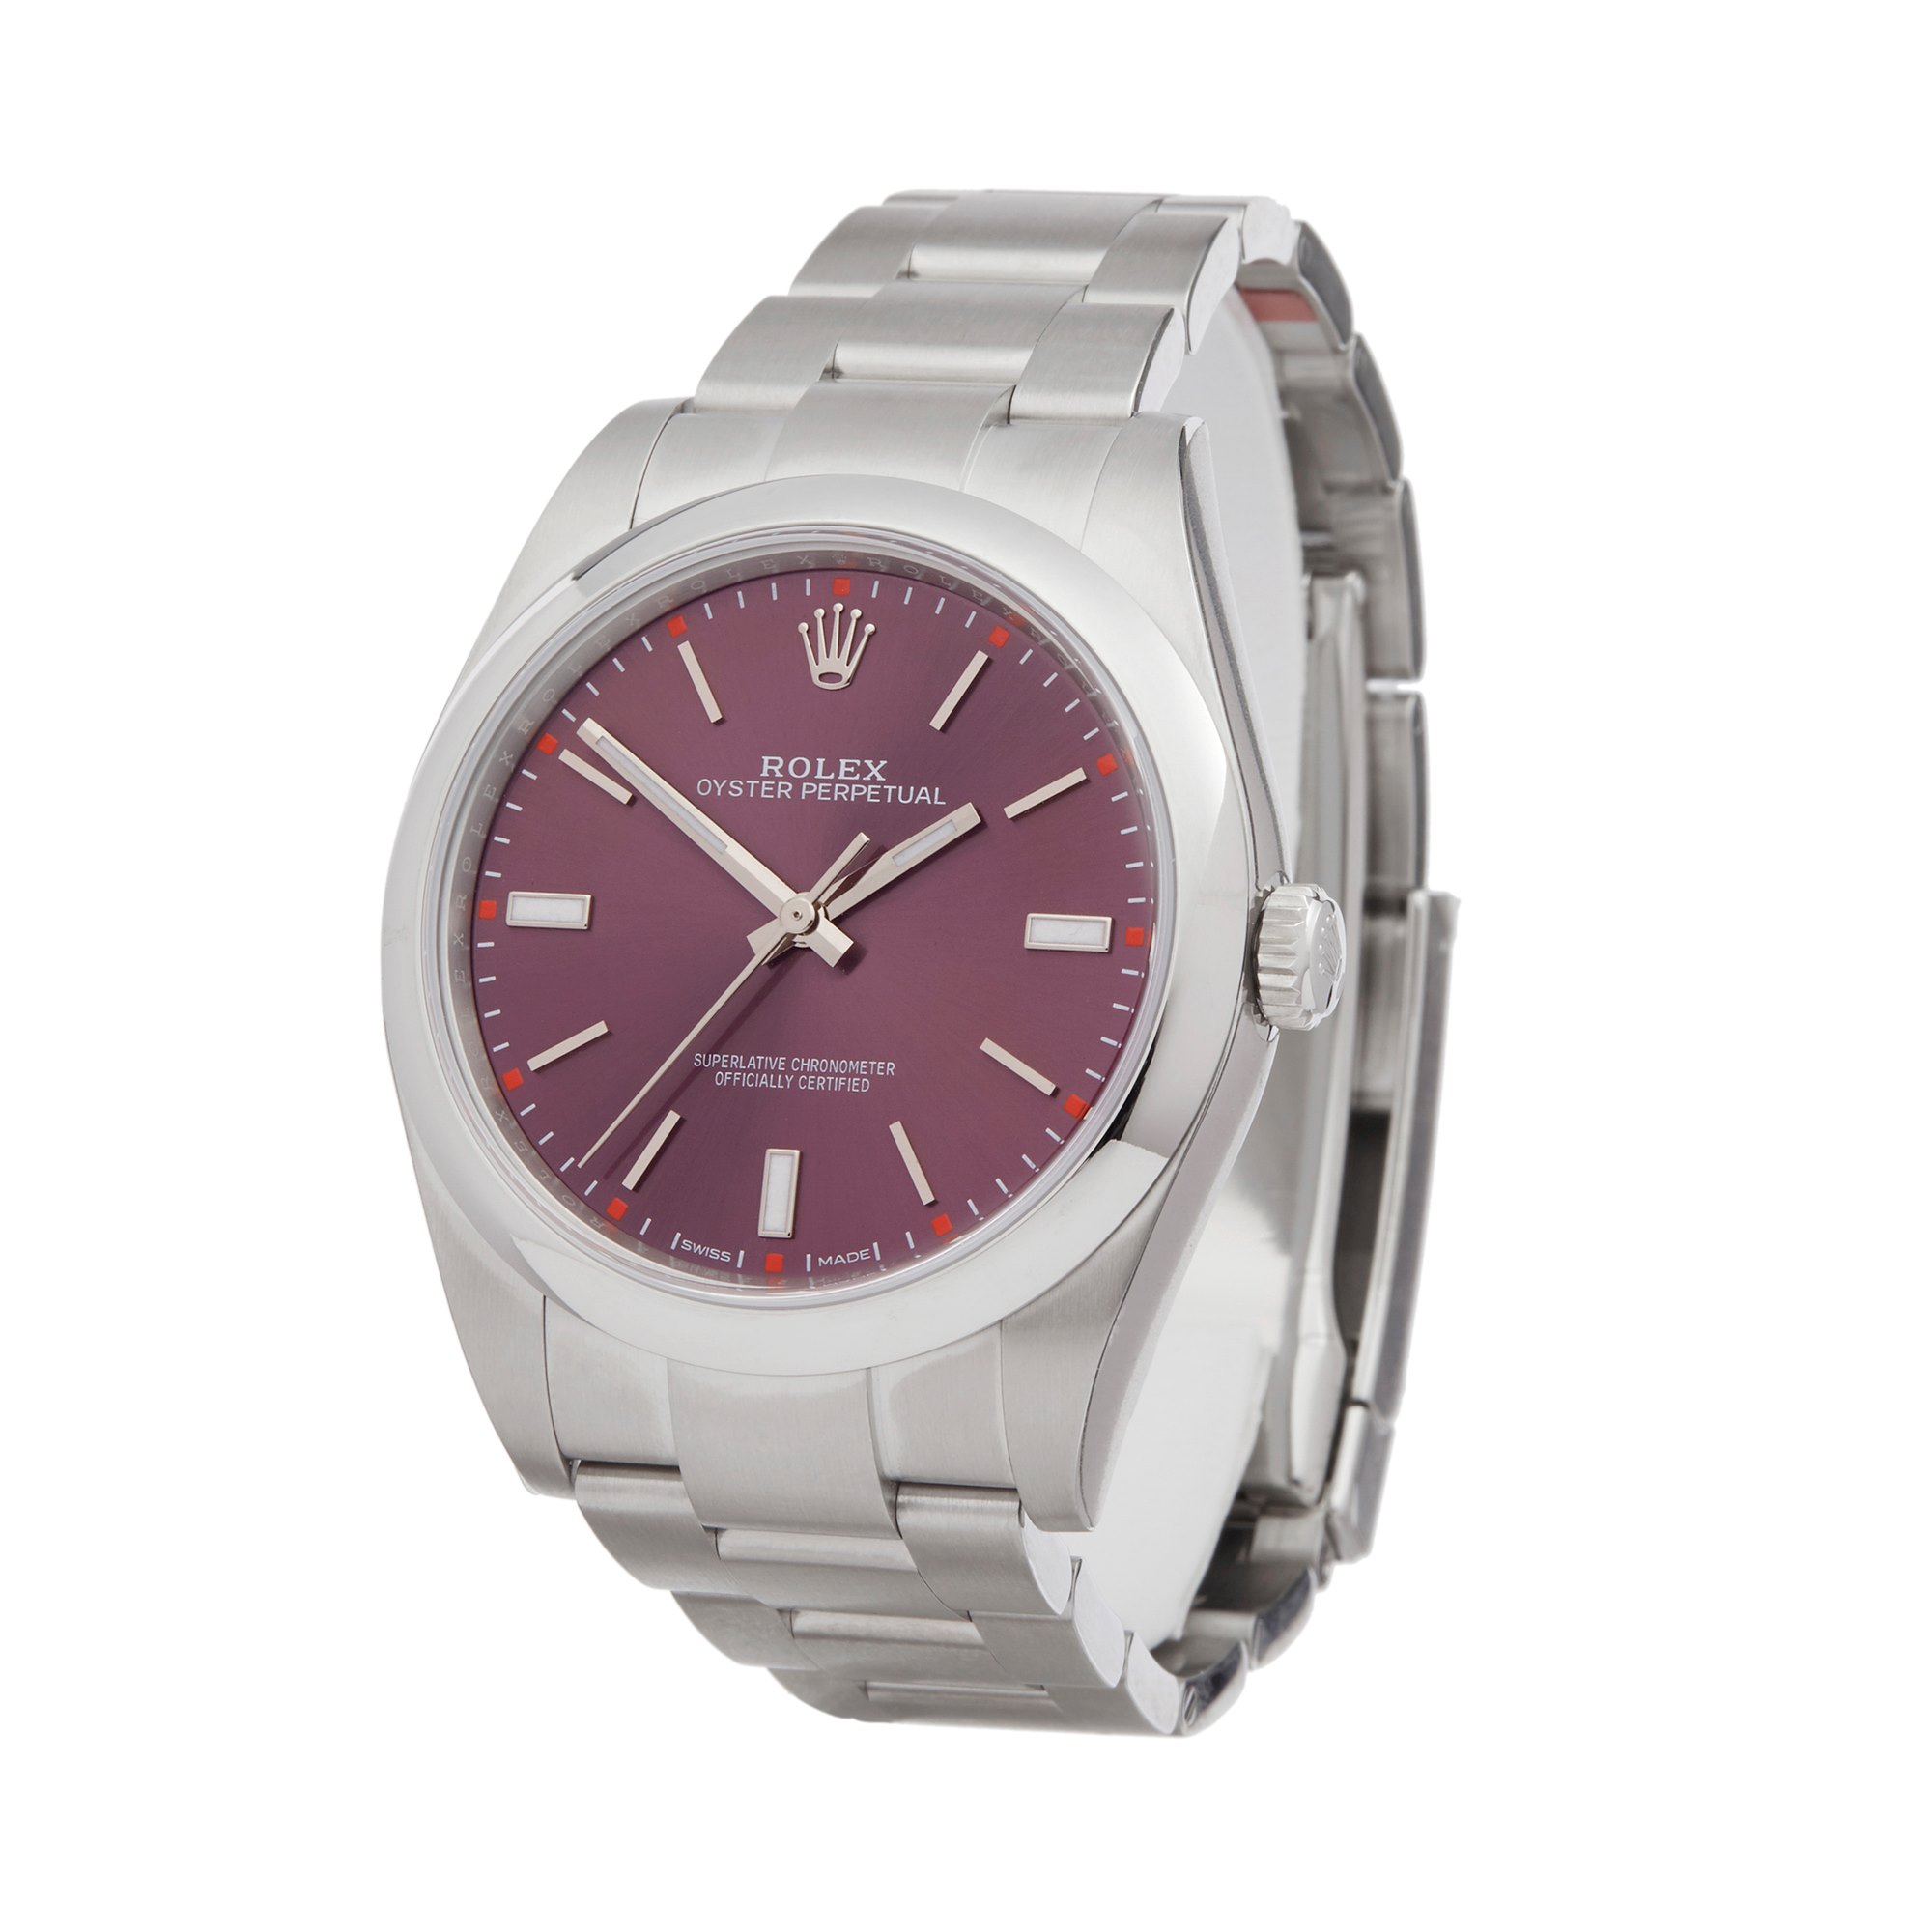 Rolex Oyster Perpetual 39 Stainless Steel 114300